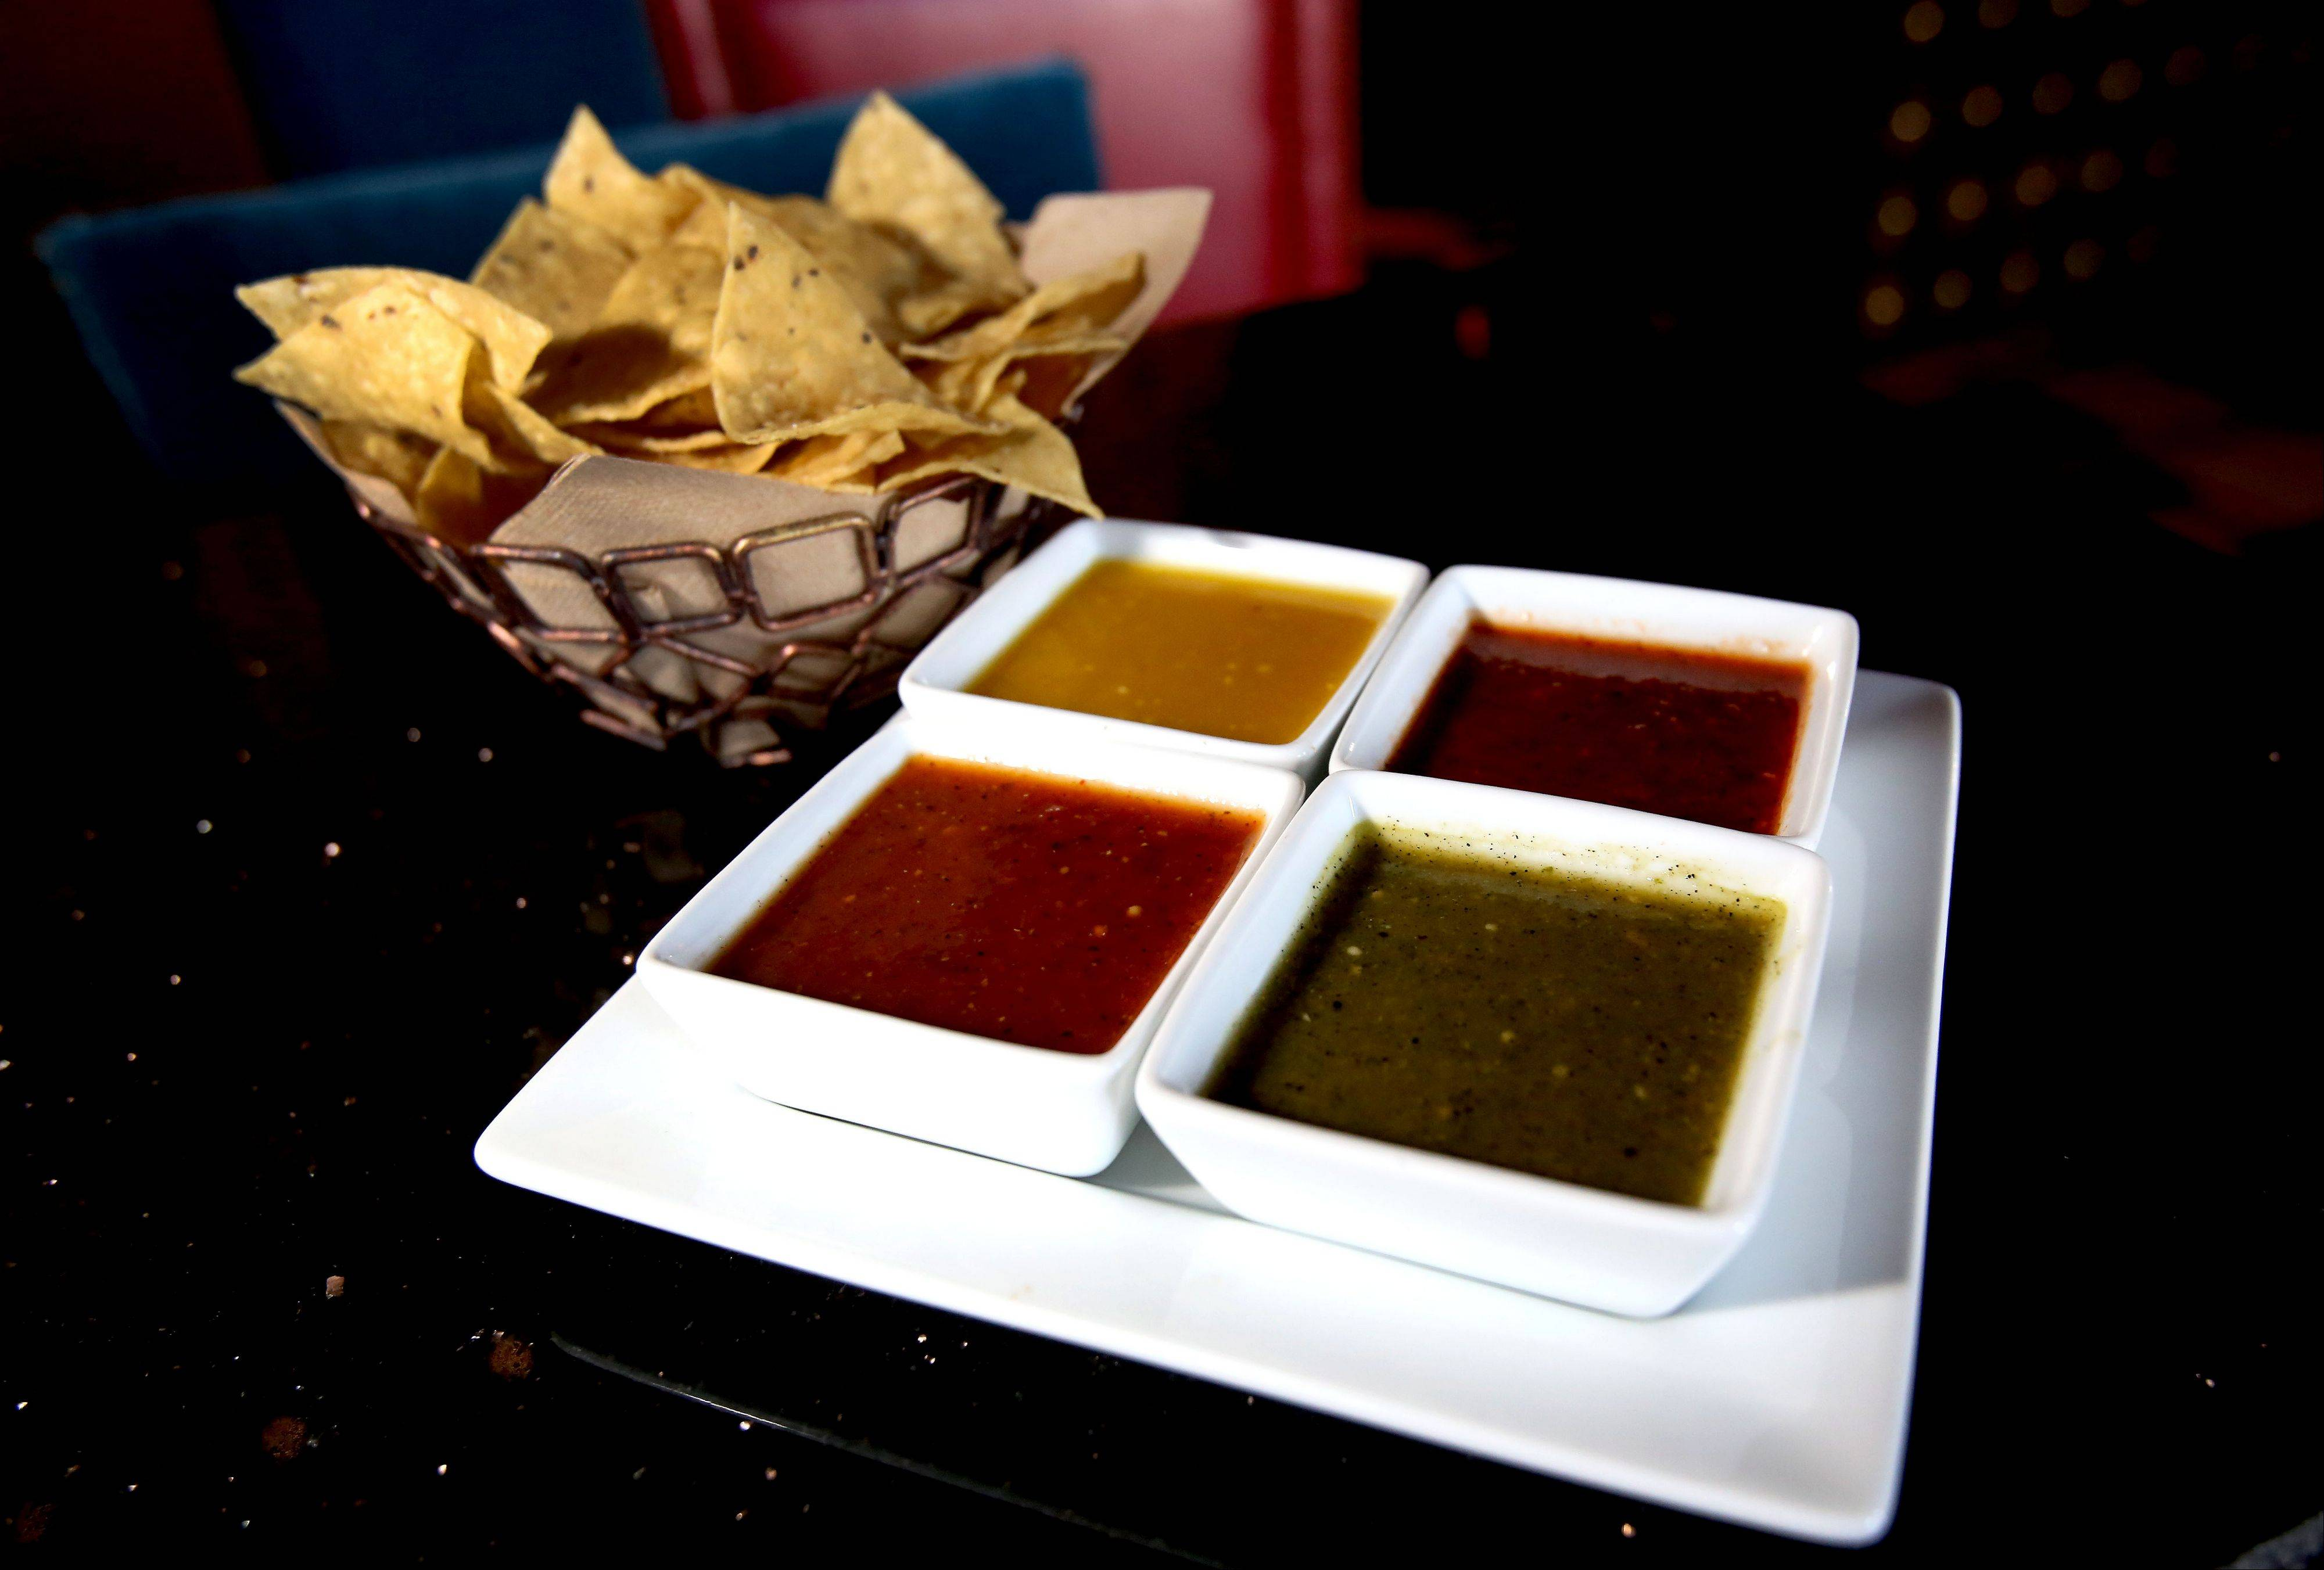 The salsa combo platter has something for everyone at Barbakoa restaurant in Downers Grove.